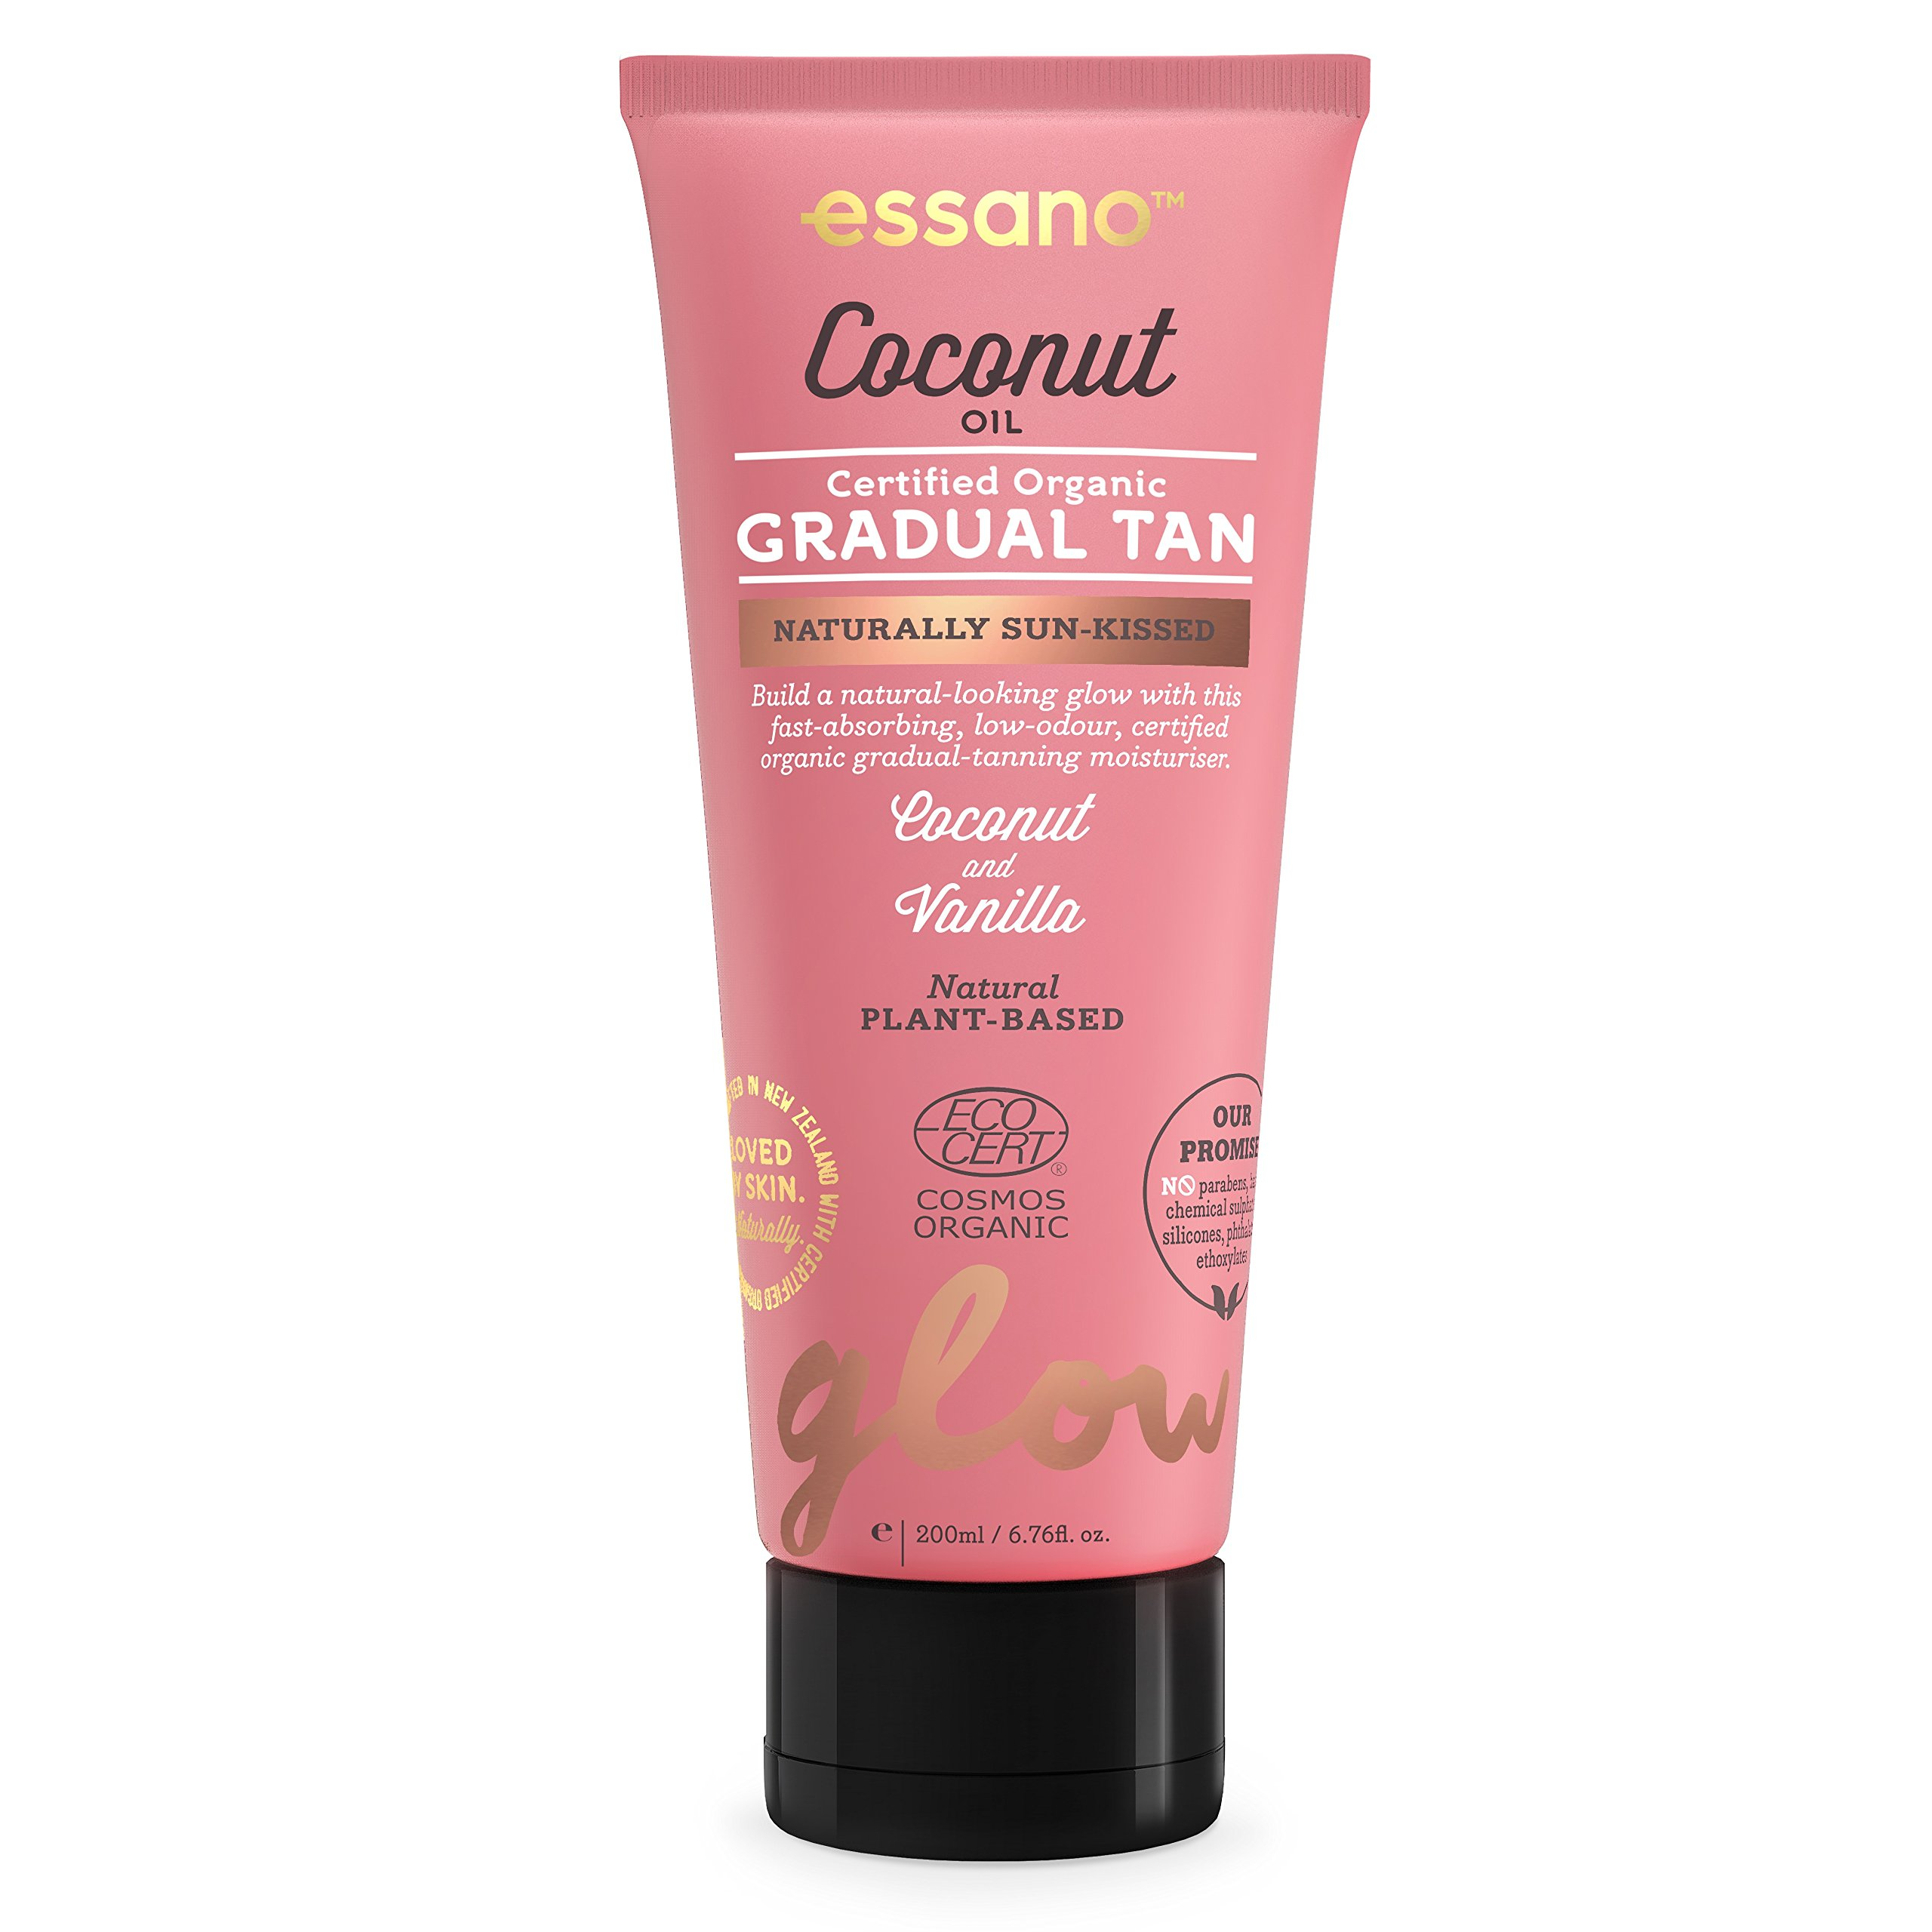 Essano Coconut Oil Gradual Tan, 200ml (6.6oz) by Essano